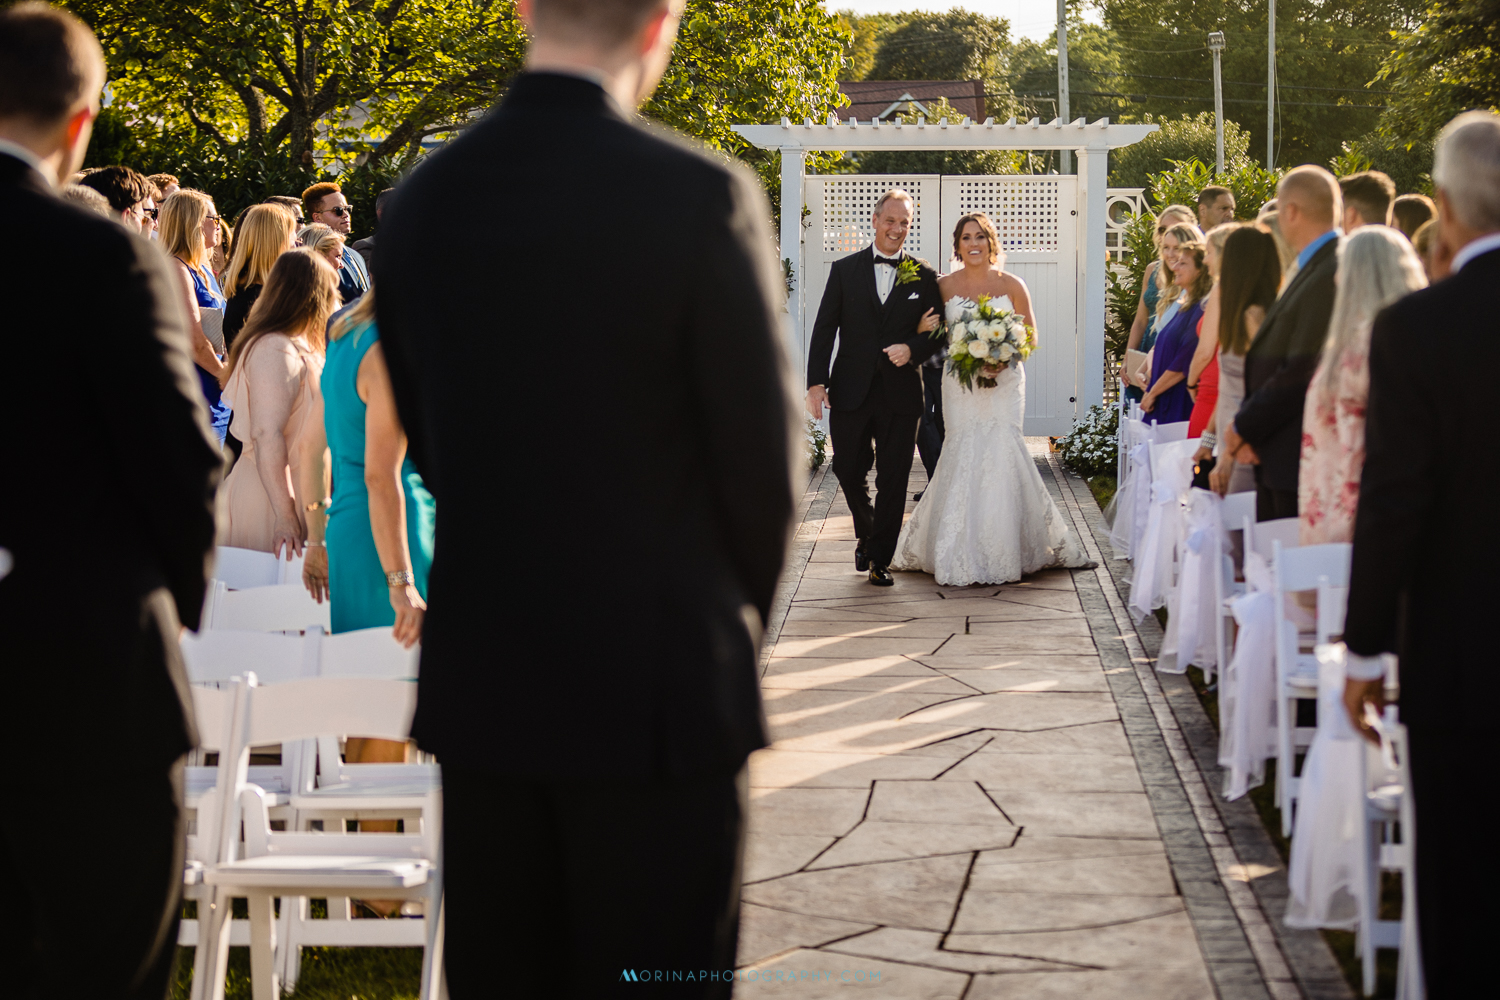 Amanda & Austin wedding at Crystal Point Yacht Club 70.jpg